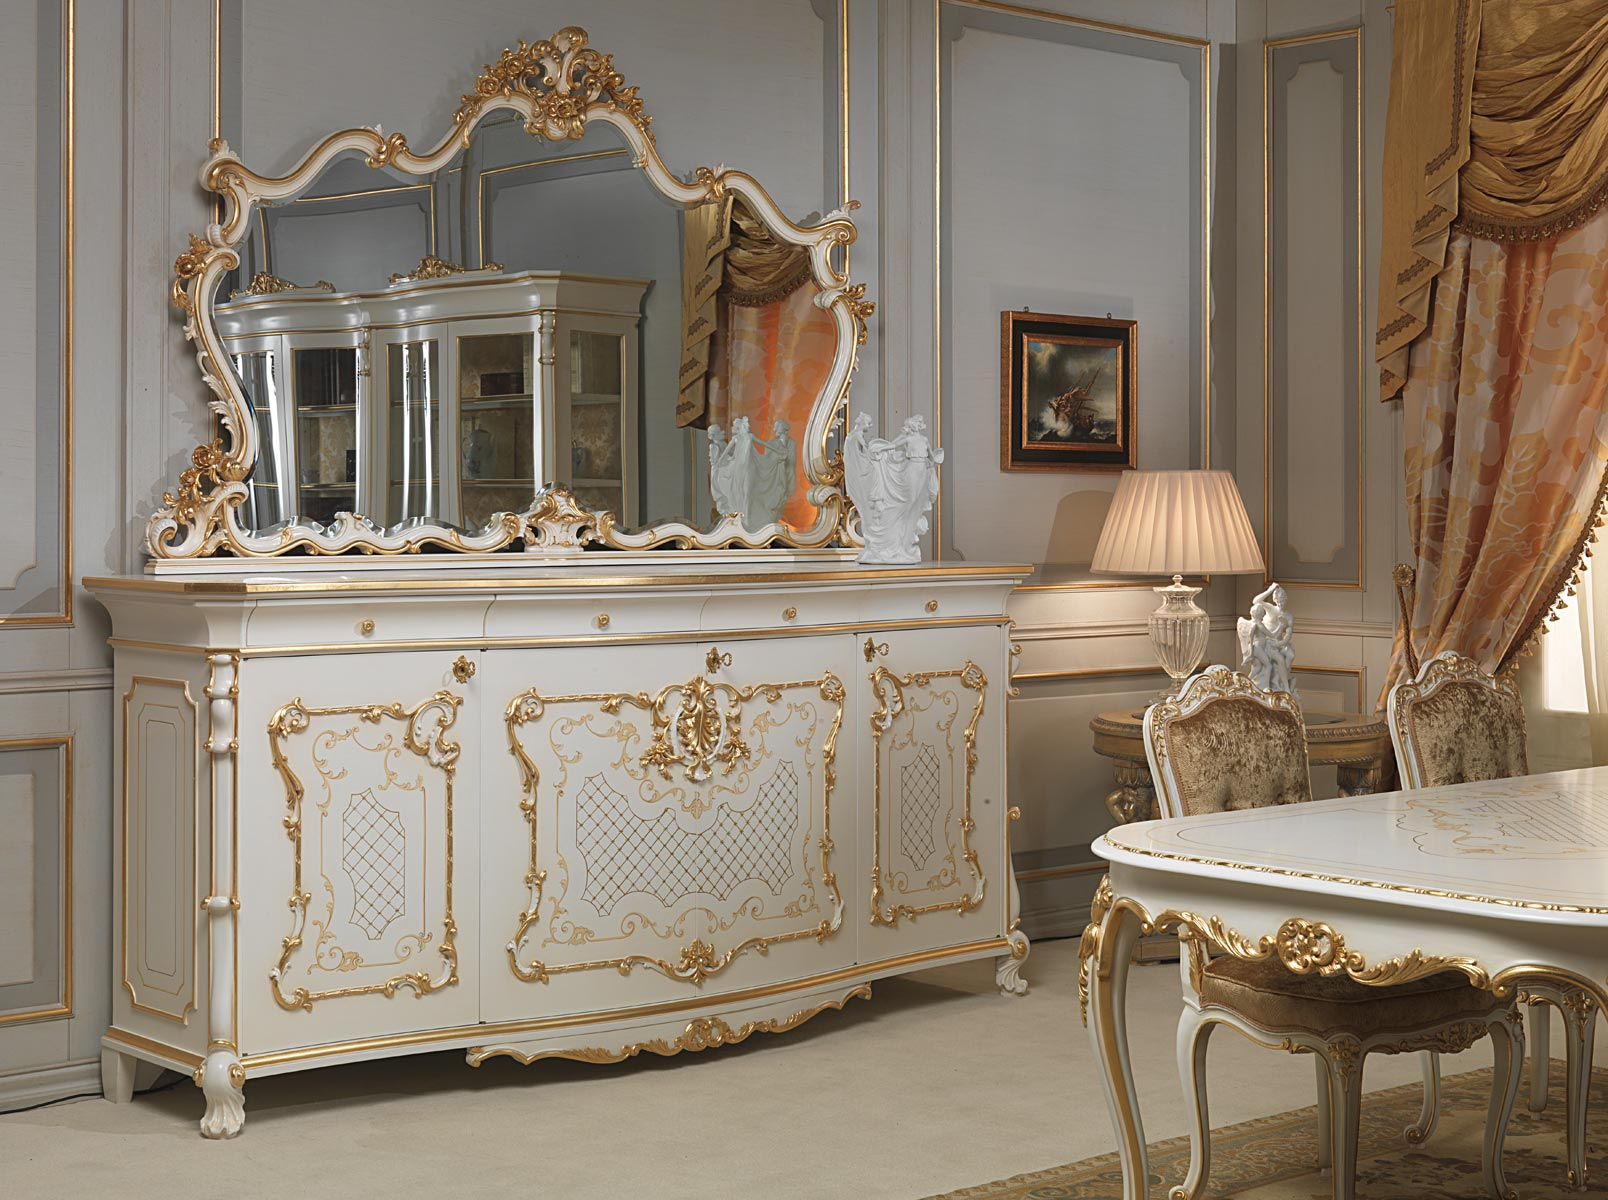 Deco Table Sejour Of Sideboard Table And Chairs In Louis Xv Style Vimercati